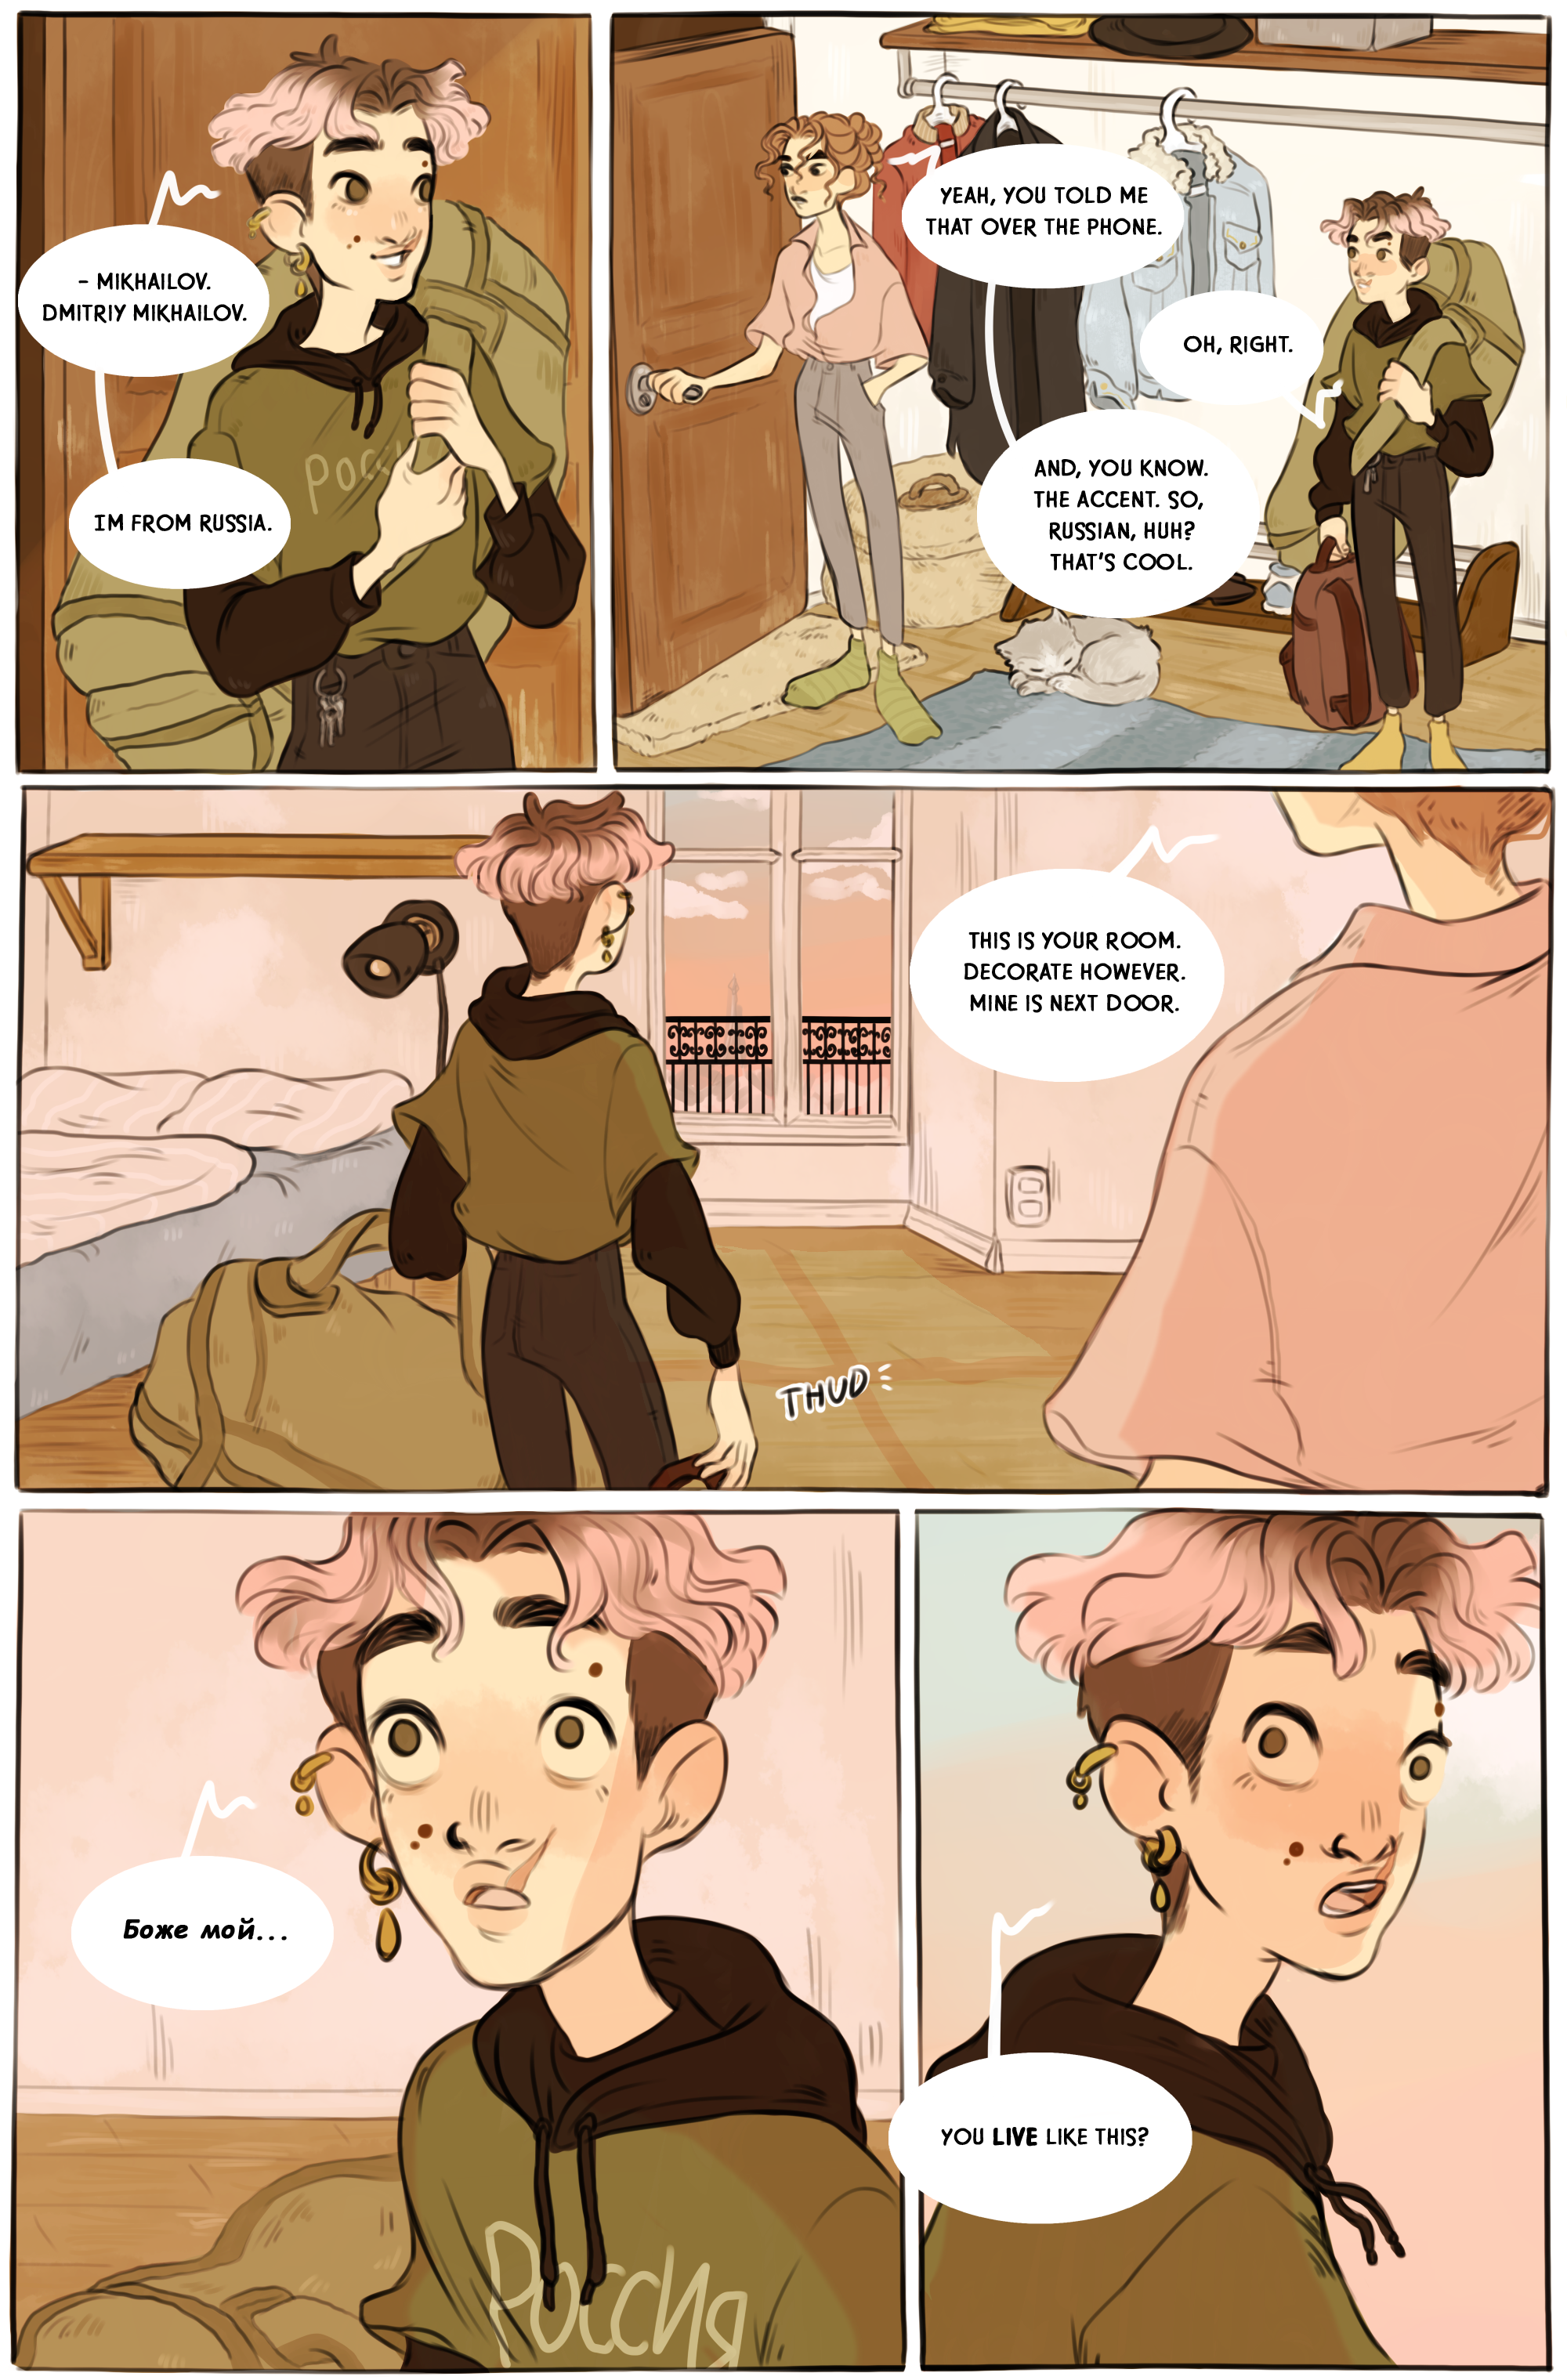 SS_PAGE10.png